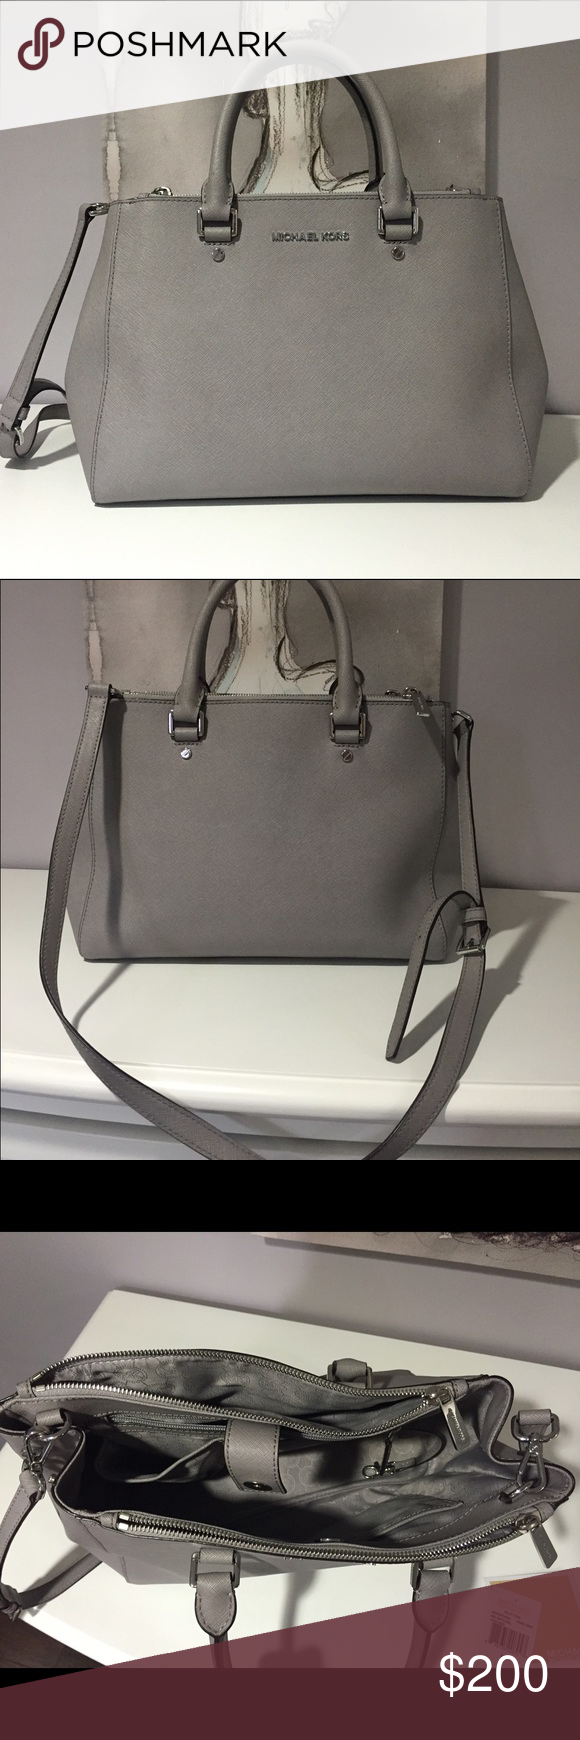 """MICHAEL KORS SAVANNAH MED SAFFIANO LEATHER SATCHEL MICHAEL KORS SAVANNAH MEDIUM GREY SAFFIANO LEATHER SATCHEL - Condition: Like new - Material: Saffiano Leather - Dimensions: 12.5""""W X 8.5""""H X 5""""D - Adjustable Strap: 21""""-24"""" - Interior: 1 Center Zip Compartment, 2 Open Compartments, 1 Open Pocket, 1 Zipper Pocket, 1 Key Chain - Magnetic Snap Fastening - Lining: 100% Polyester - Retails: $328 Asking $200 - Comes with dust bag and tags - From smoke free home - Sorry, no trades - Michael Kors…"""